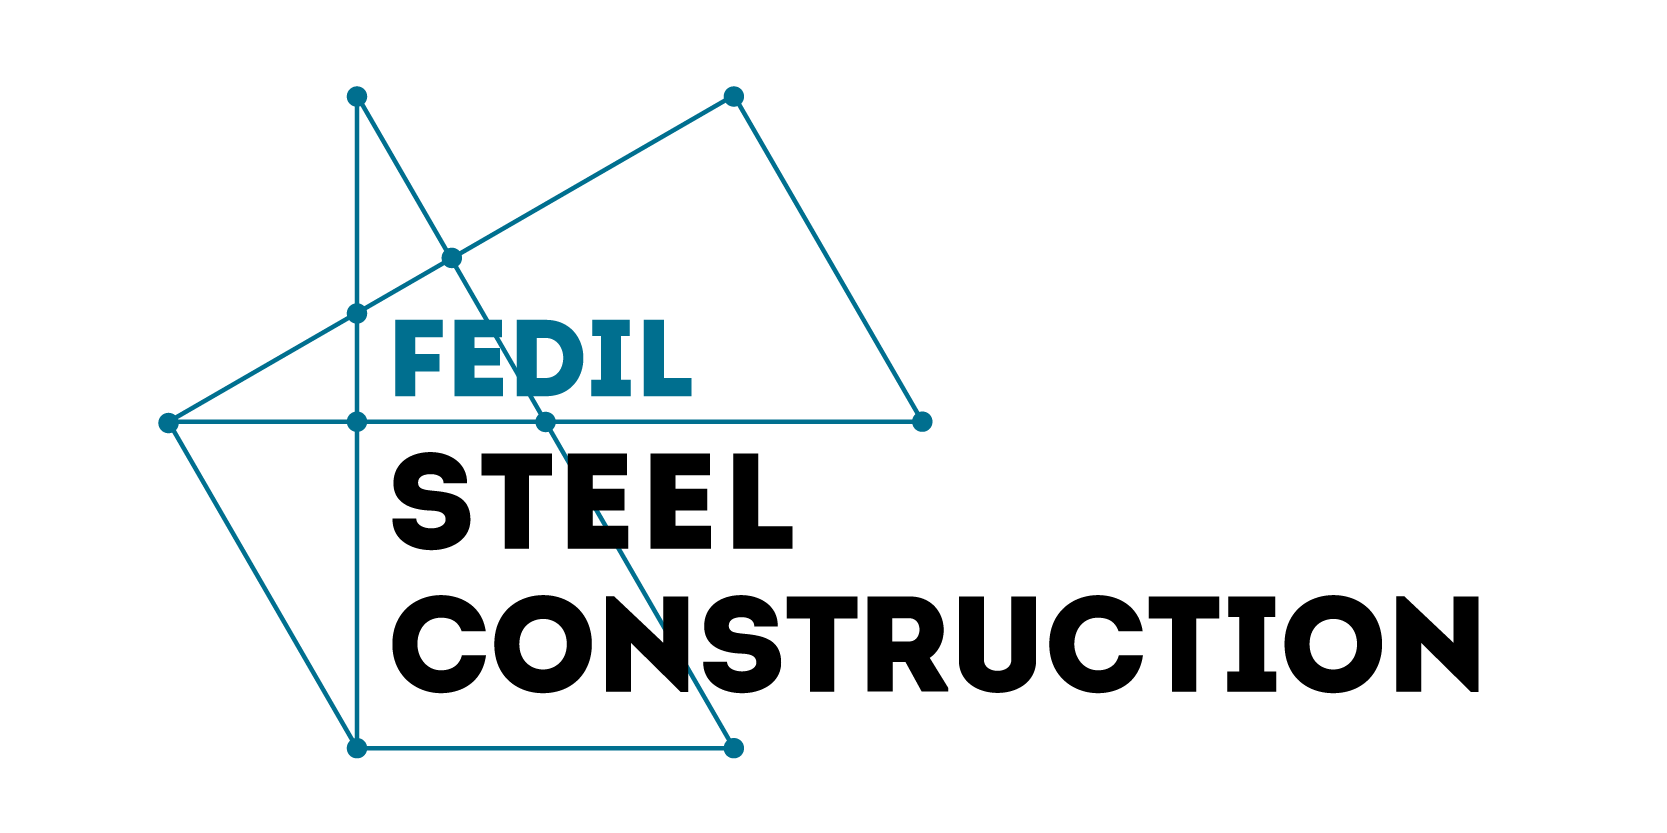 fedil steelconstruction